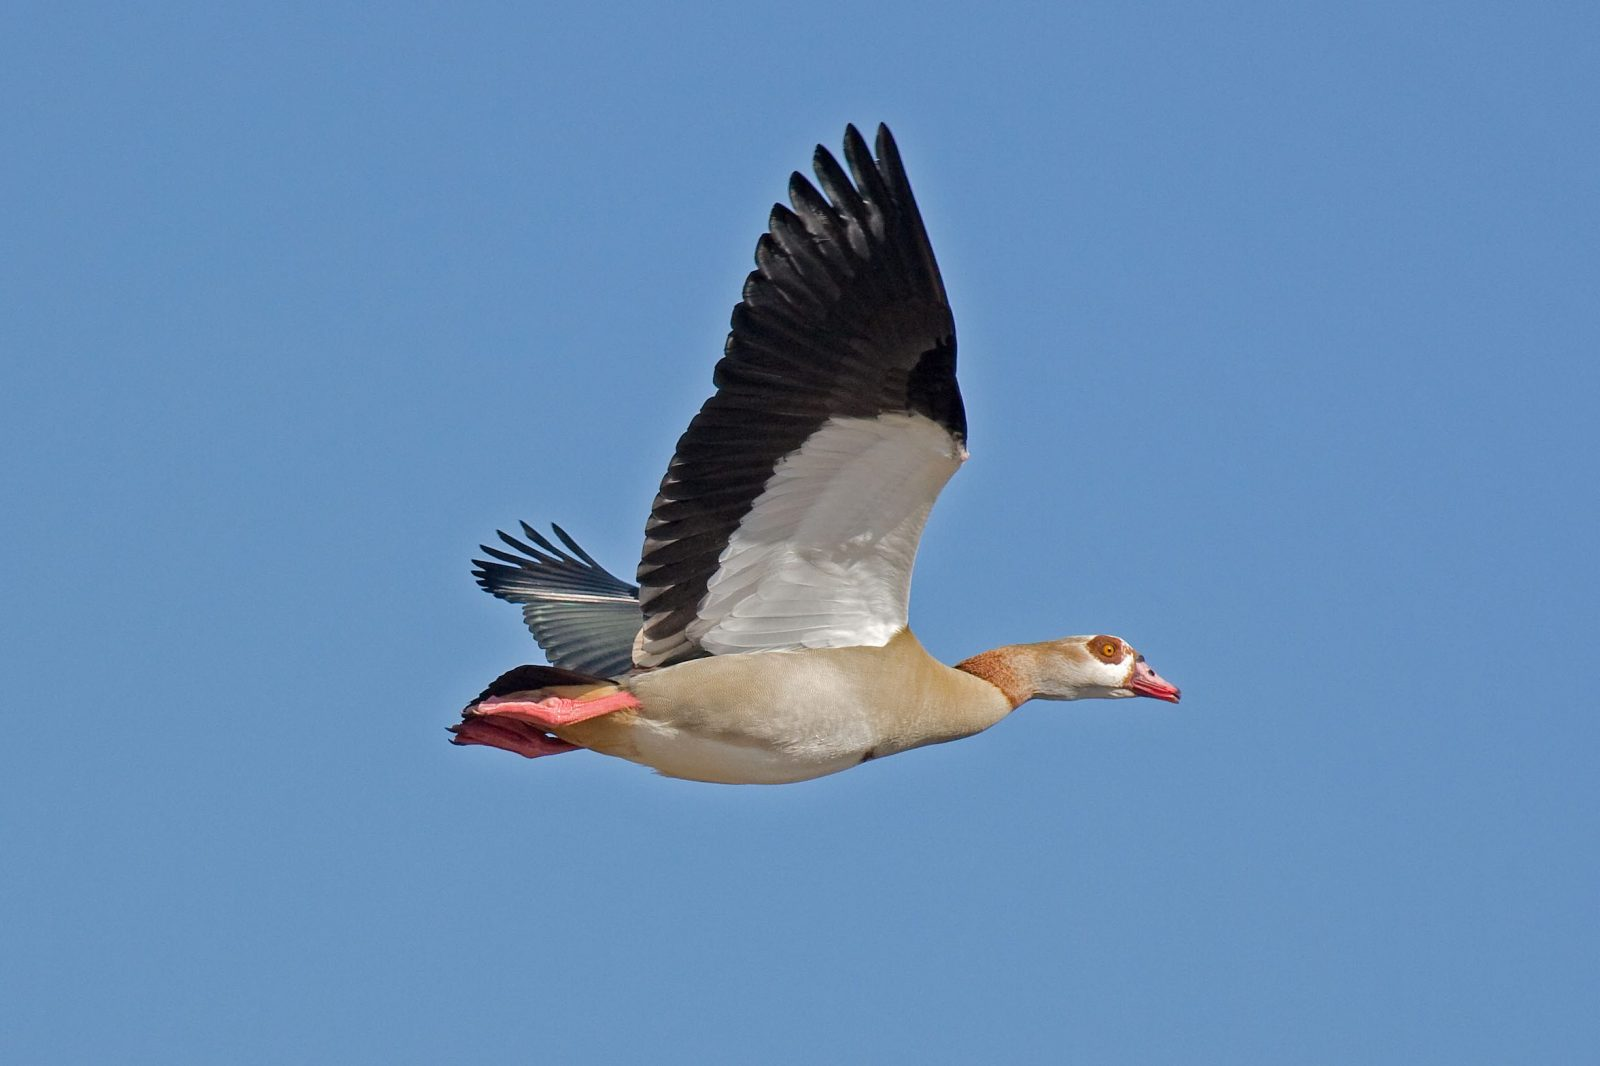 Egyptian Goose. Photo credit: Andreas Trepte. https://commons.wikimedia.org/wiki/File:Egyptian-Goose.jpg